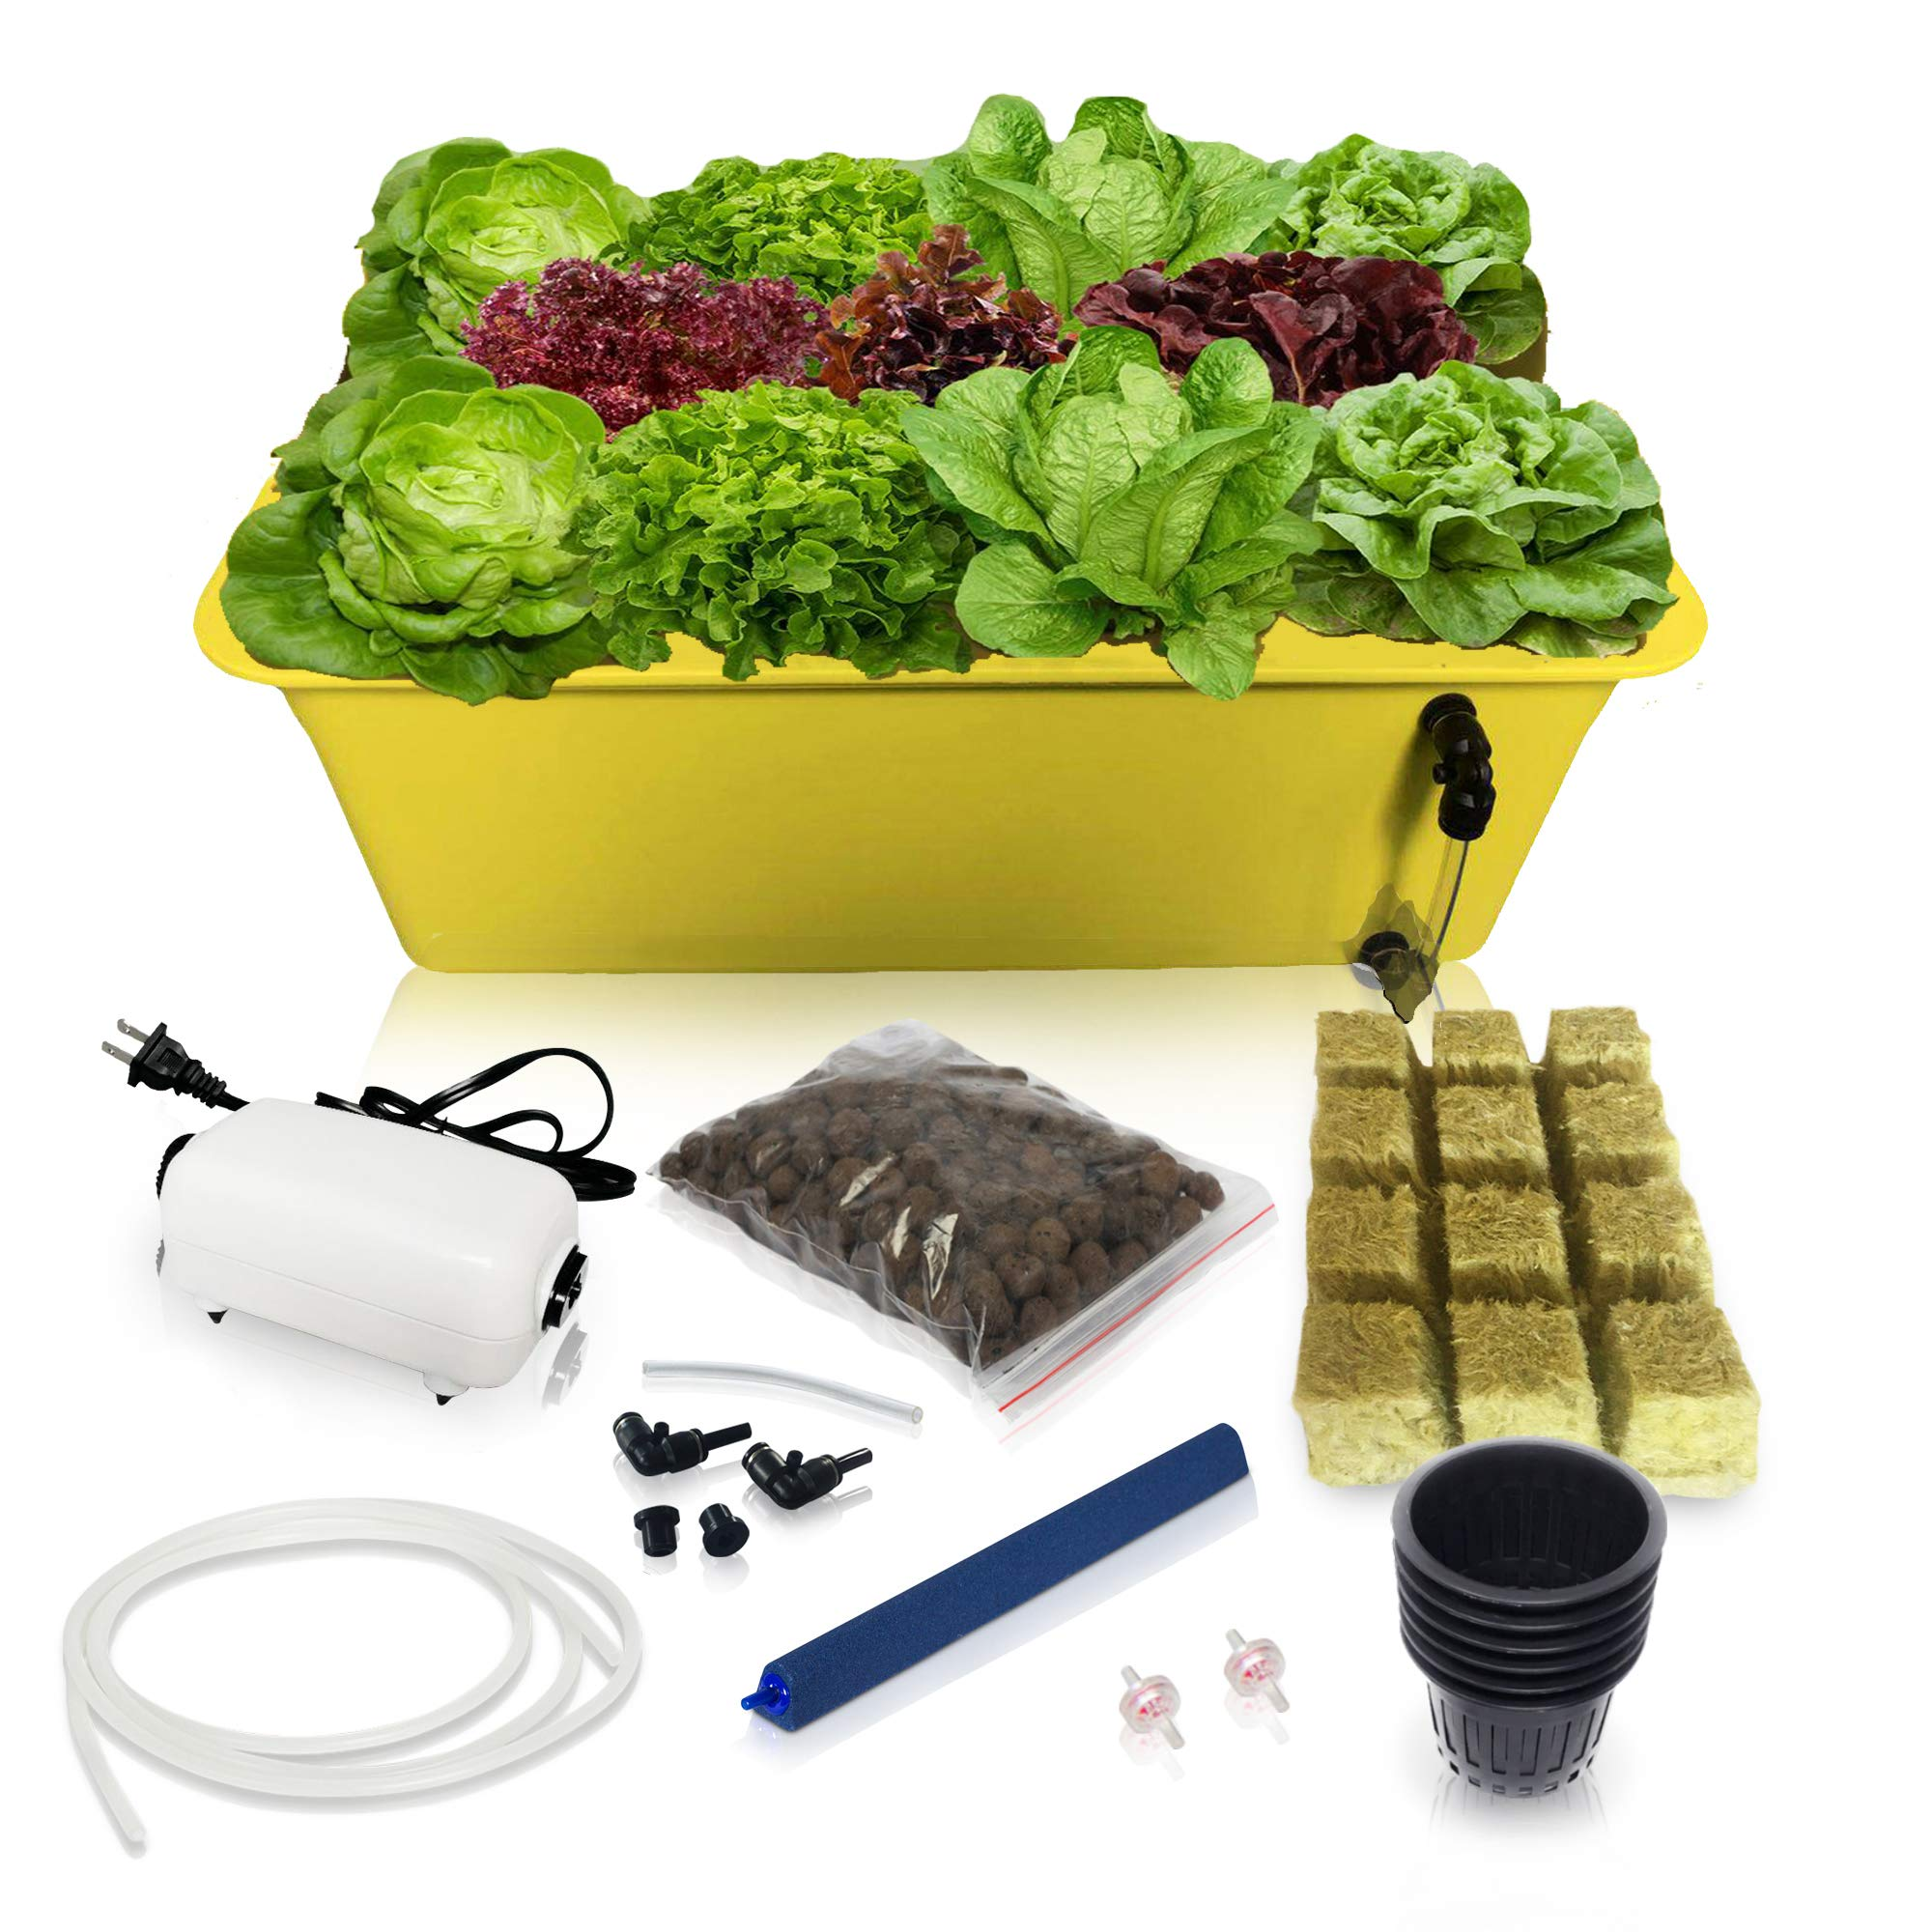 SavvyGrow DWC Hydroponics Growing System-Kit - Medium Size w/Airstone, 11 Plant Sites (Holes) Bucket, Air Pump, Rockwool - Best Indoor Herb Garden for Lettuce, Mint, Parsley - Grow Fast at Home by SavvyGrow